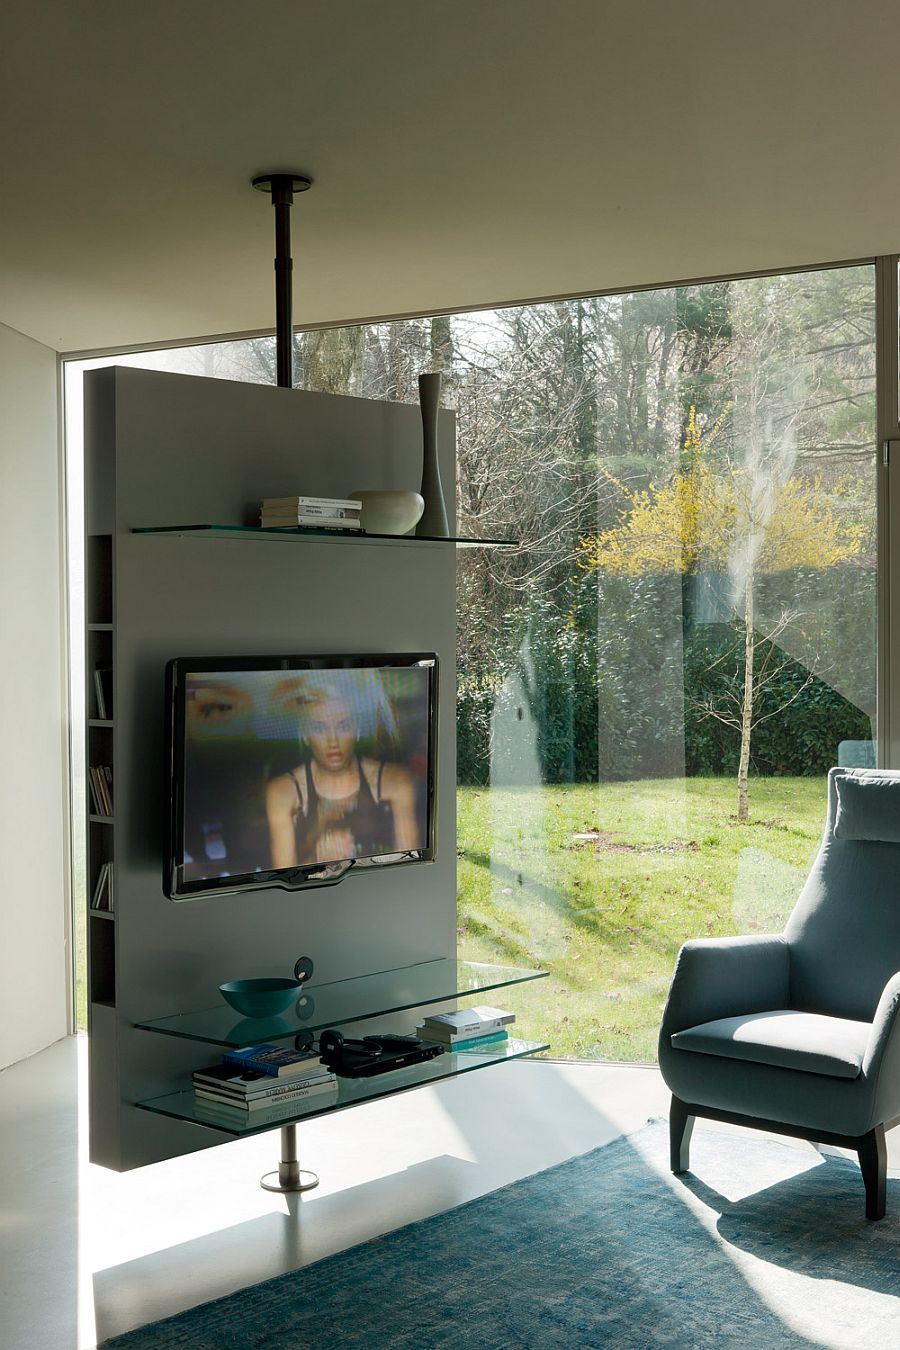 Gorgeous revloving TV Stand is perfect for contemporary homes